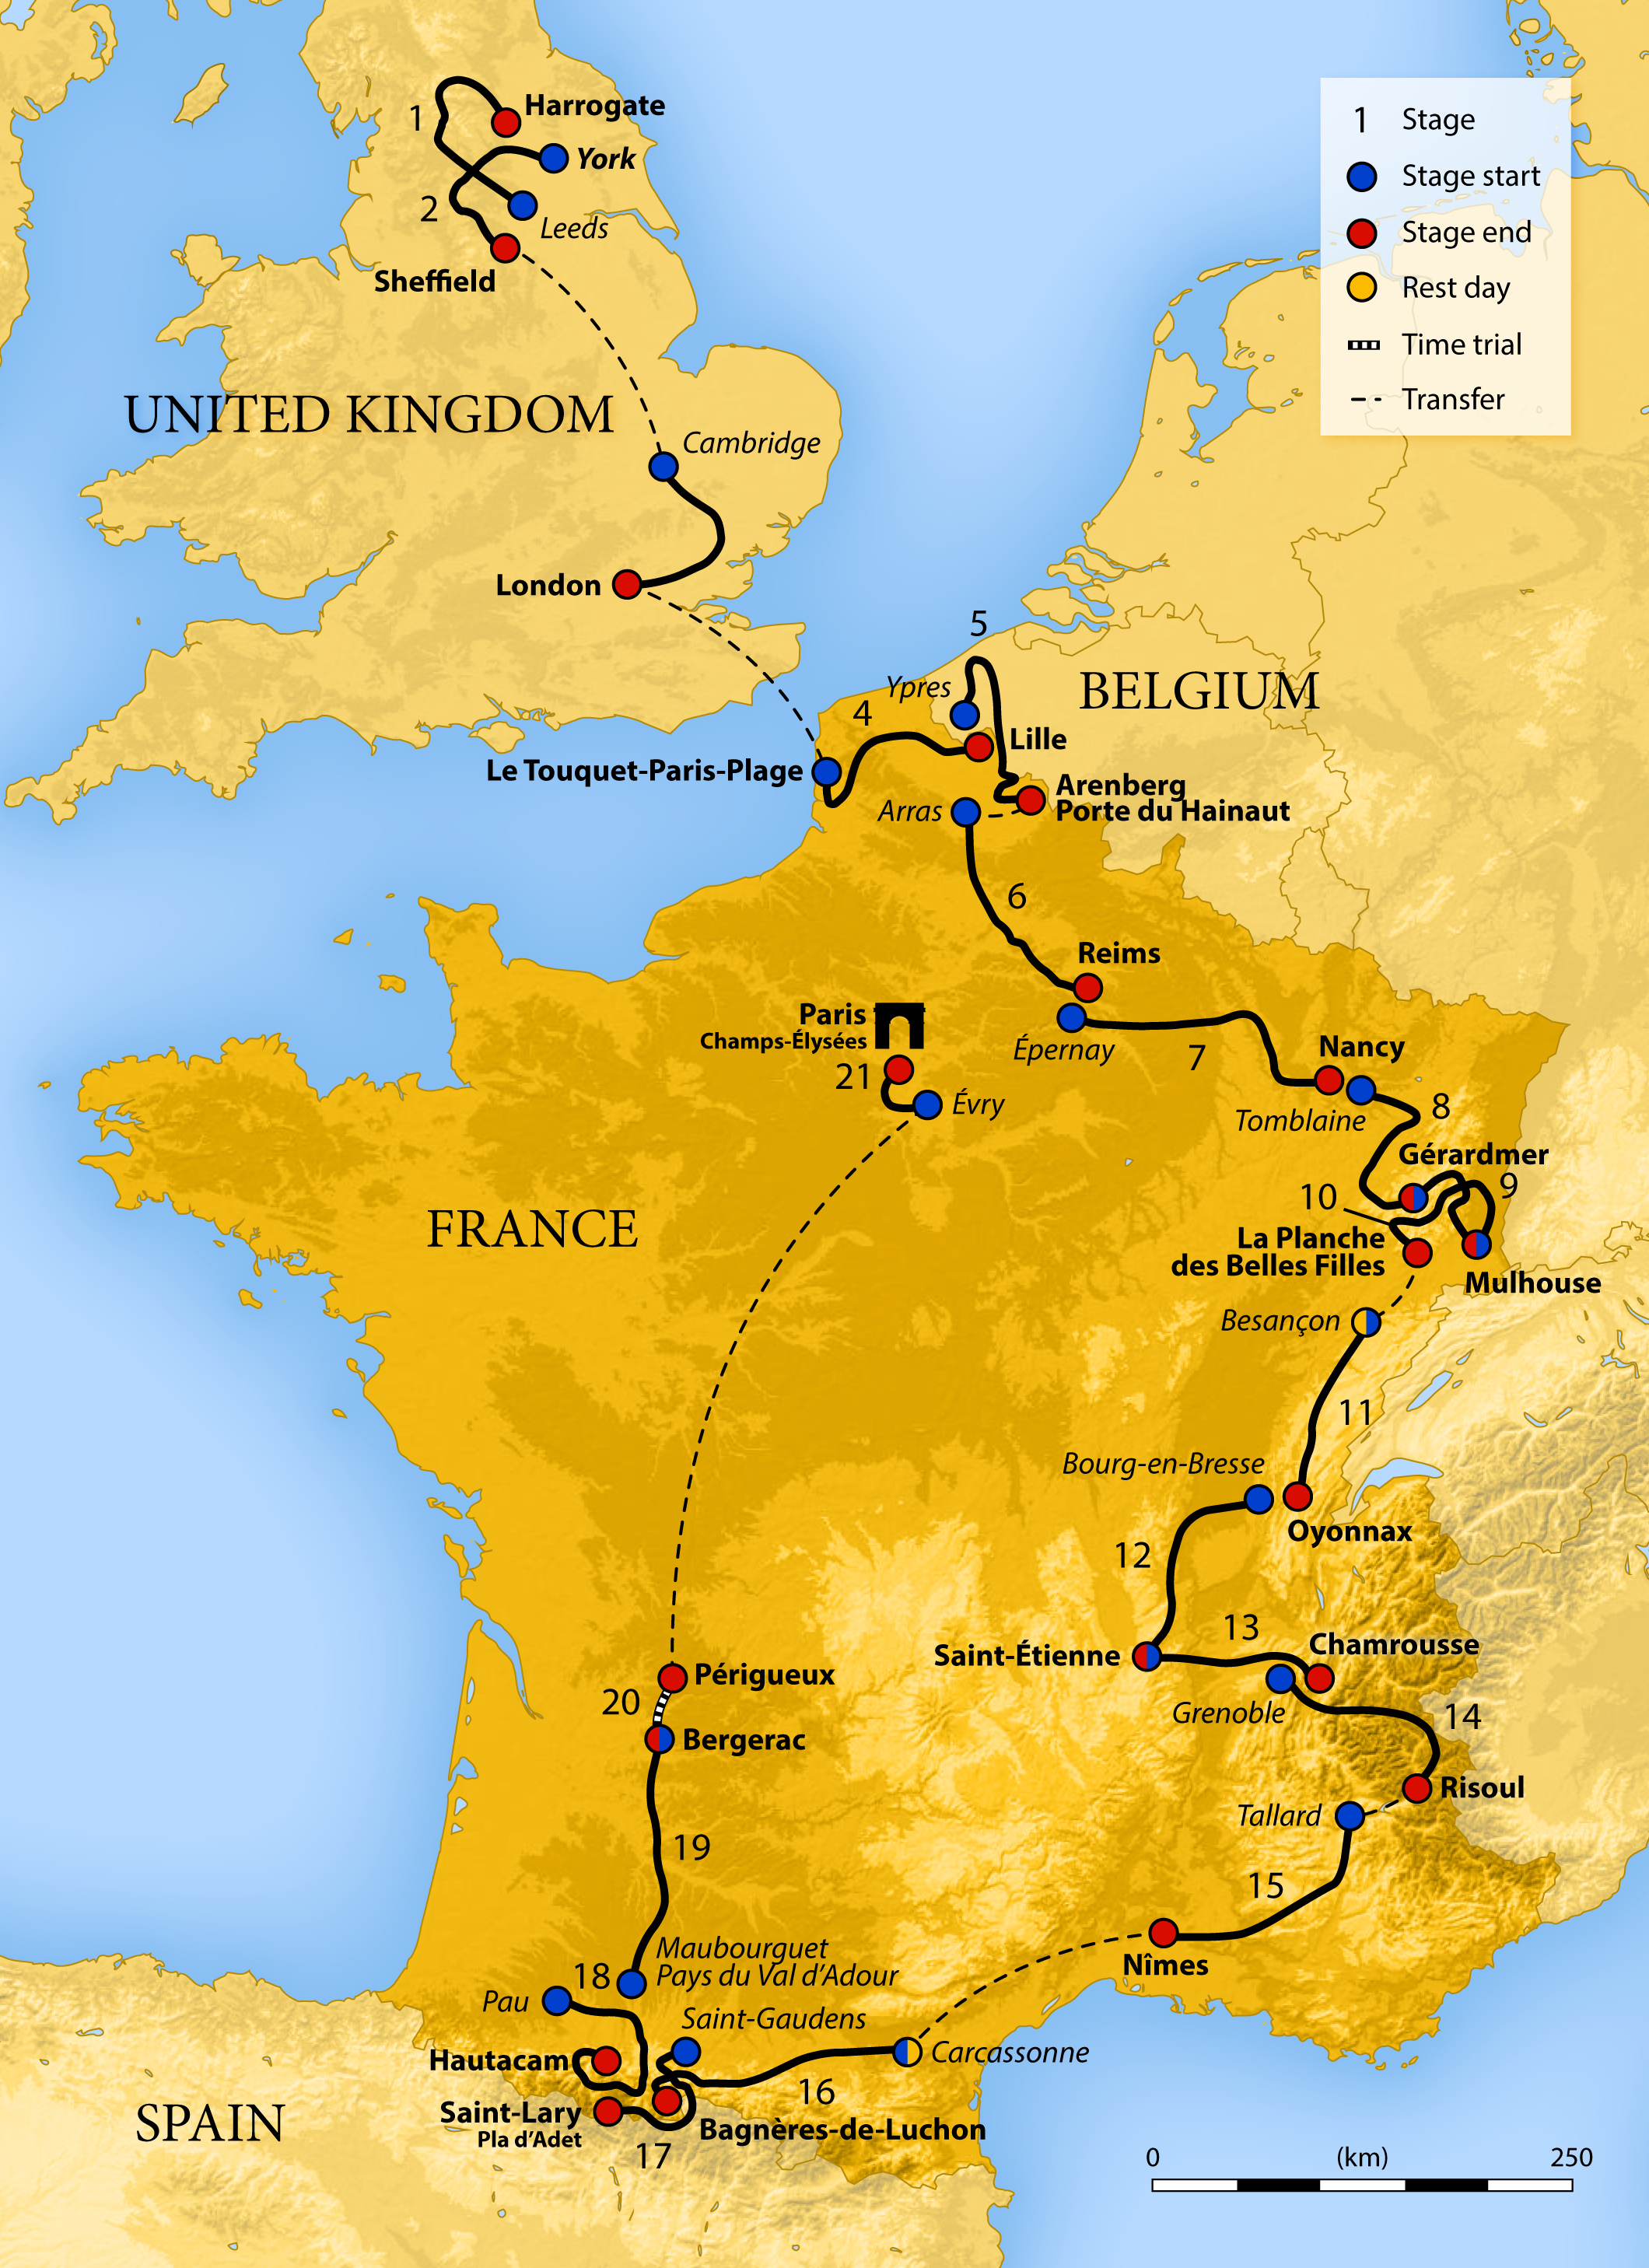 2014 Tour De France starting in Yorkshire and ending in Champs-Élysées